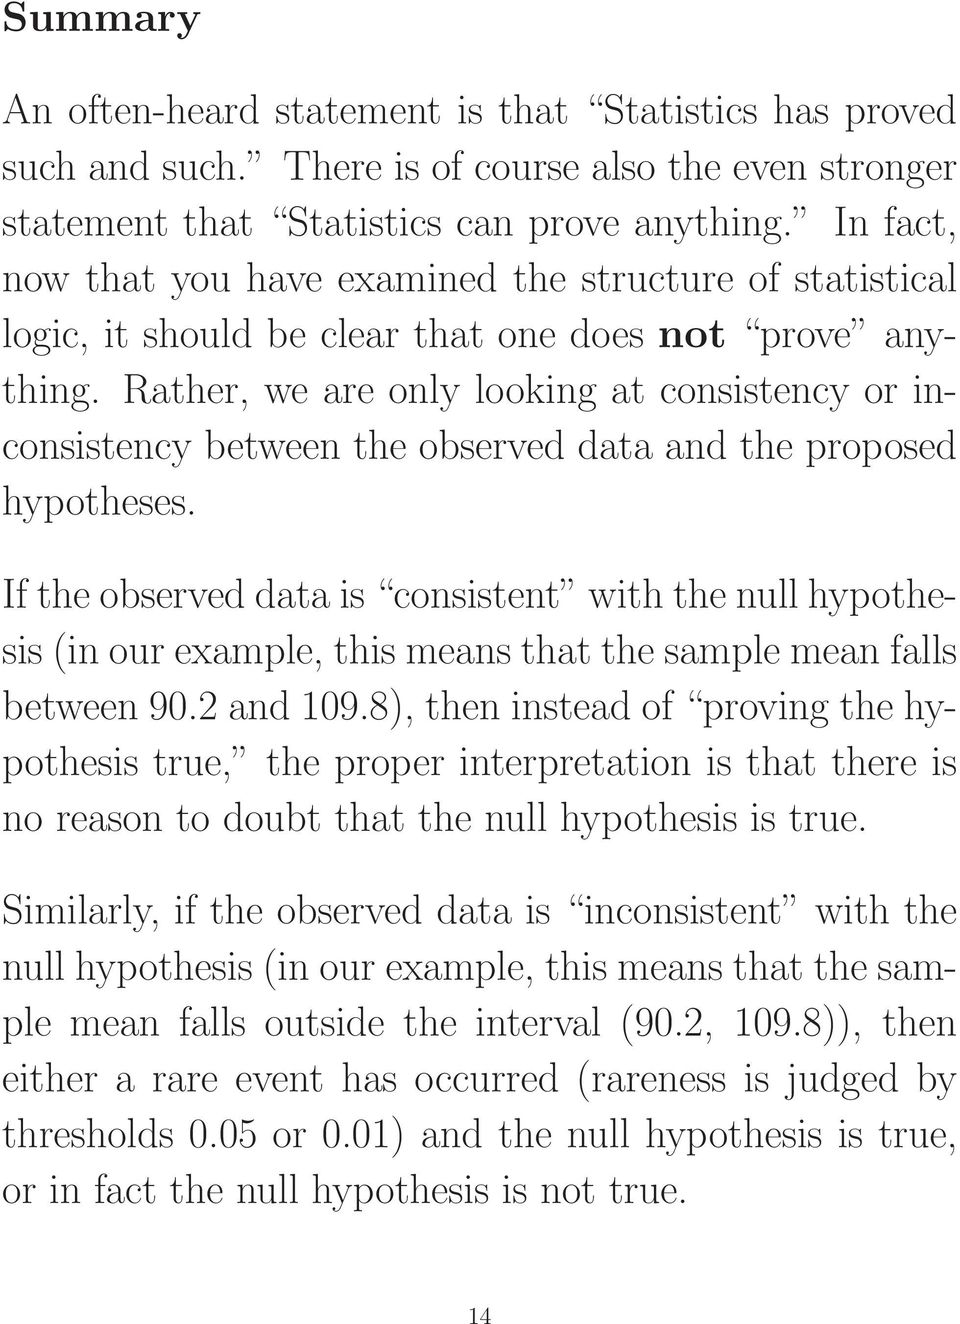 Rather, we are only looking at consistency or inconsistency between the observed data and the proposed hypotheses.